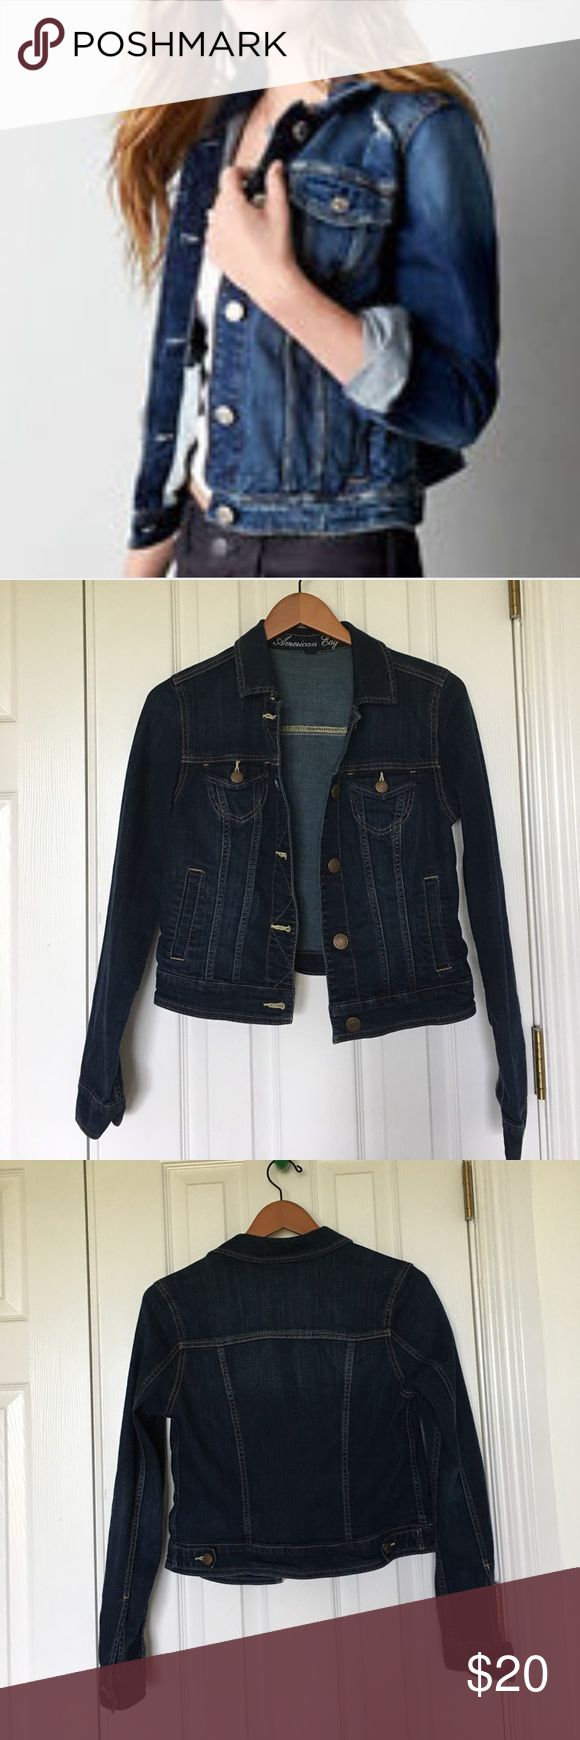 American Eagle Stretch Denim Jacket Size medium, dark wash American Eagle stretch denim jacket. No signs of visible wear. Excellent addition to every wardrobe! Toss this adorable jacket over your shoulder with a tank top and a BoHo skirt or wear it over your favorite dress for the office. As the temperatures get colder layer under a leather bomber jacket. American Eagle Outfitters Jackets & Coats Jean Jackets